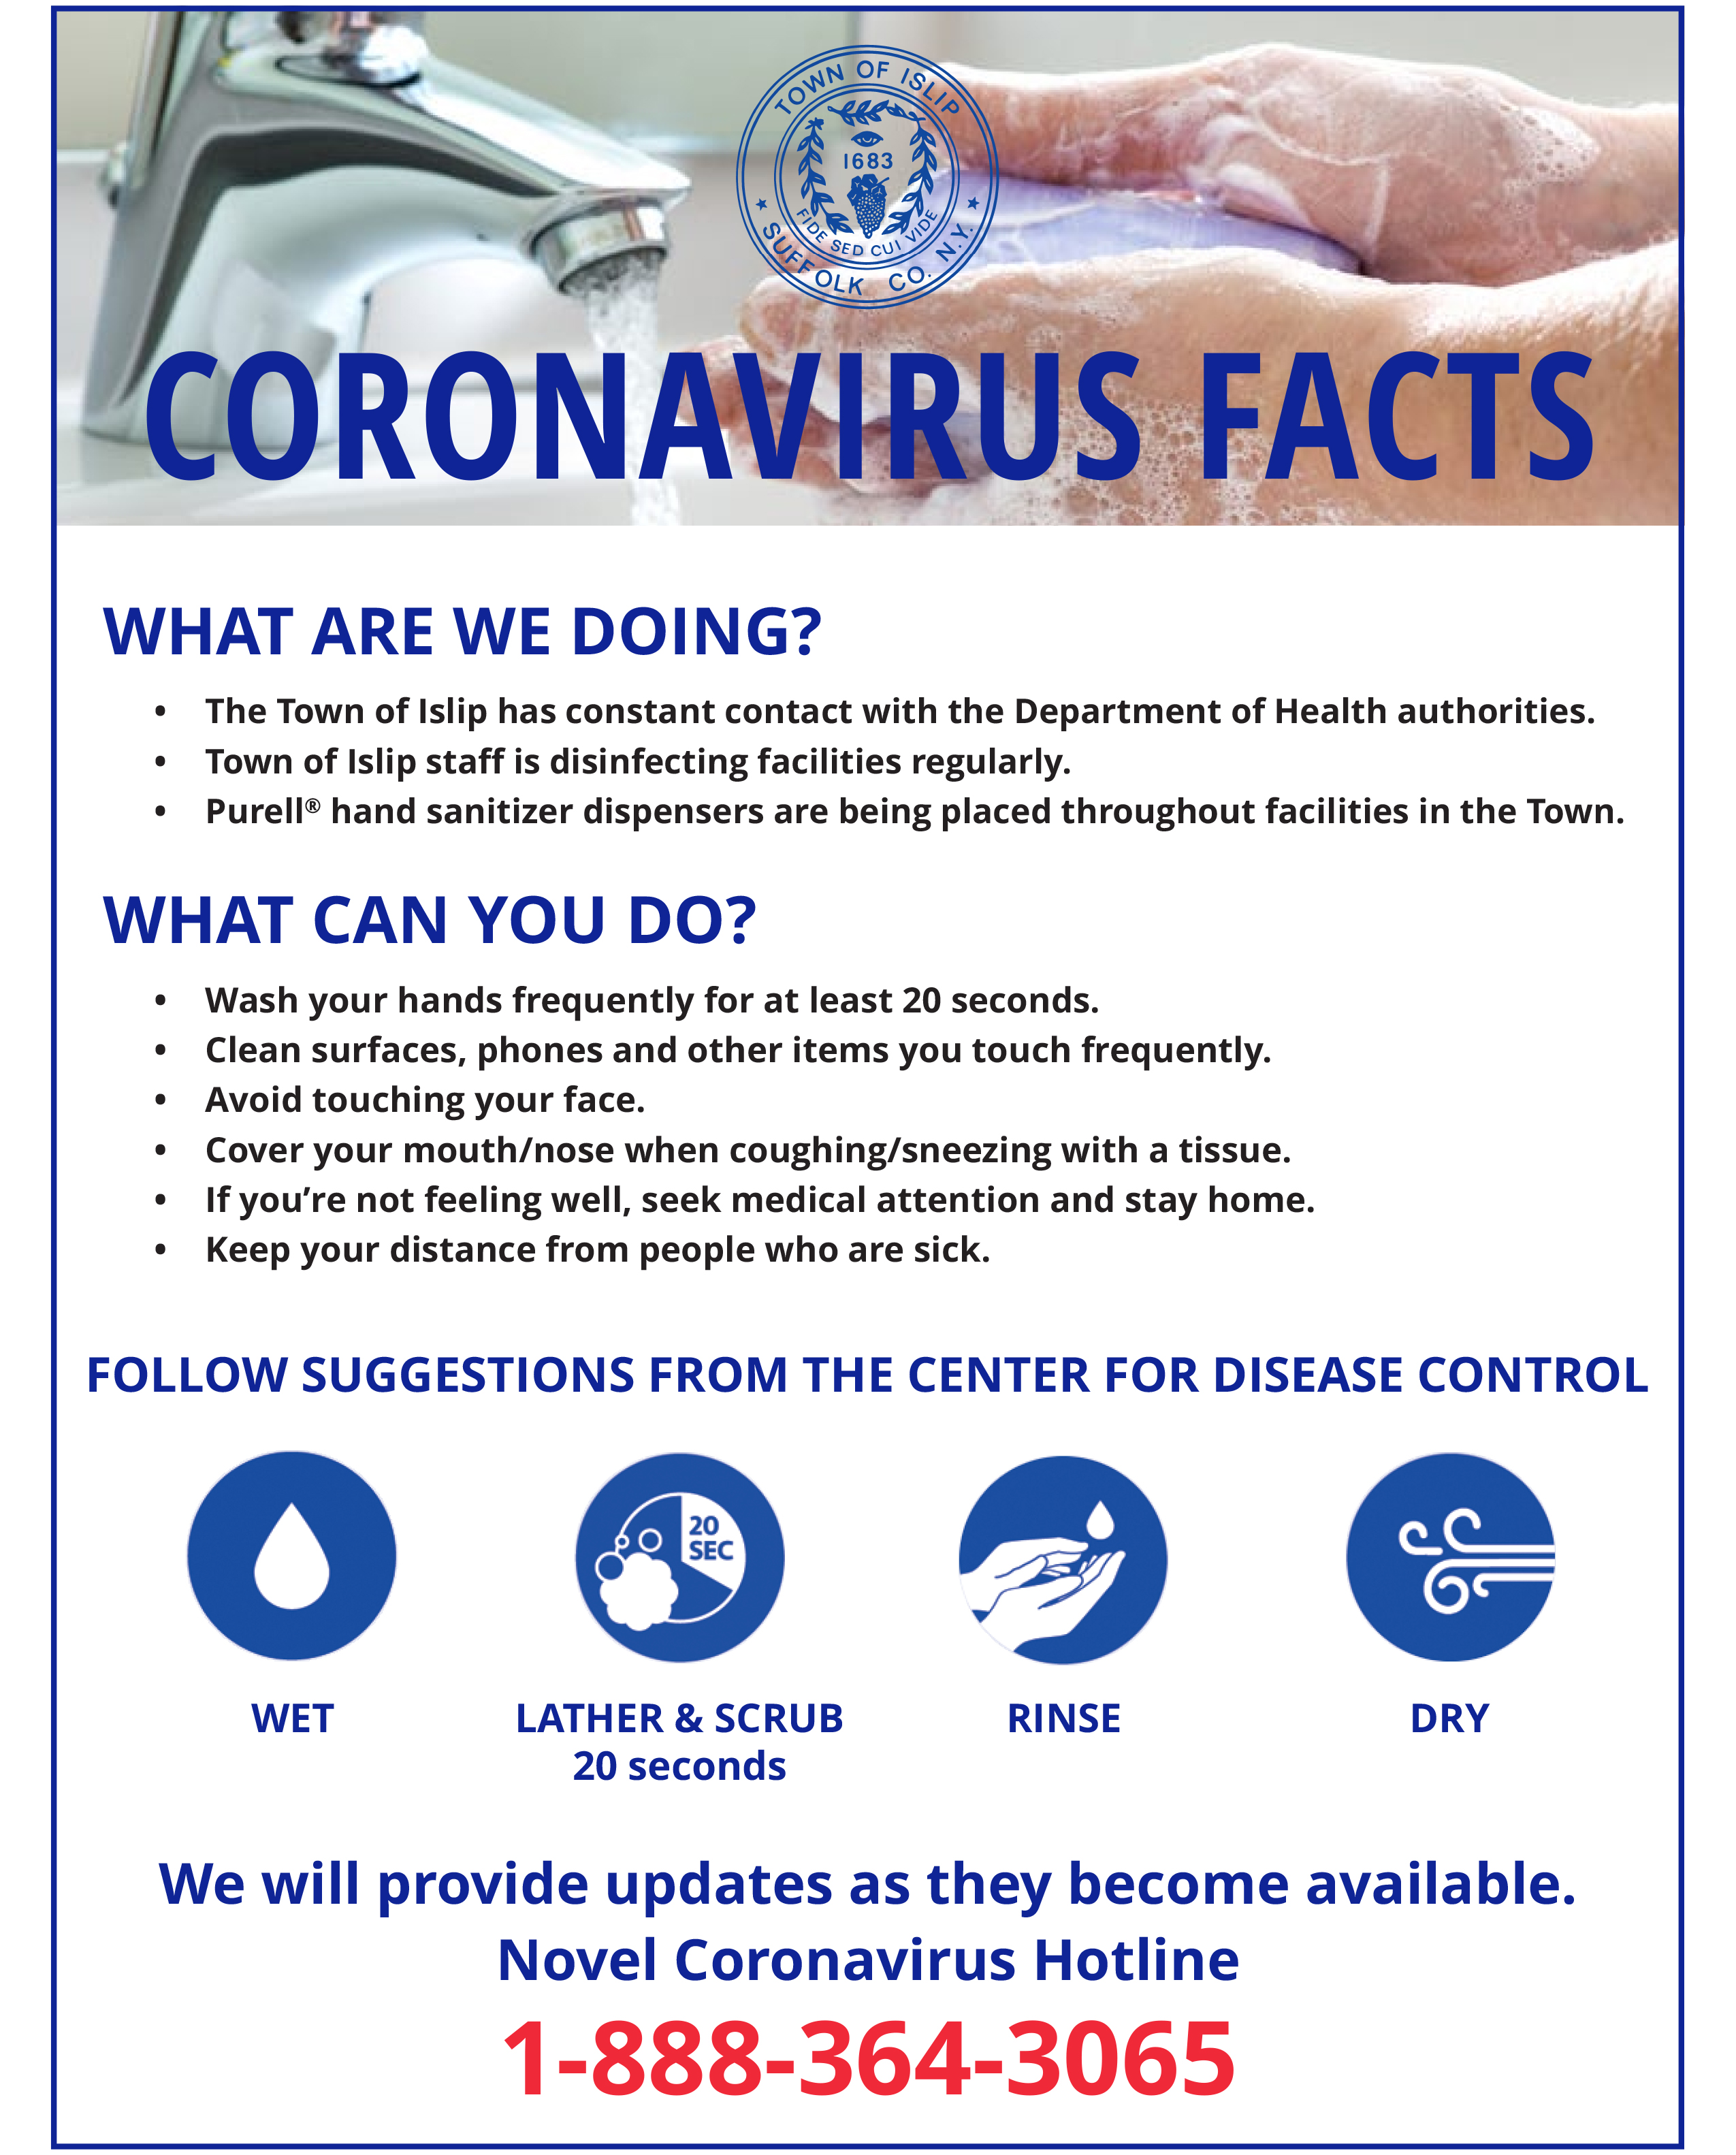 a flyer for novel coronavirus facts, call the hotline at 1-888-364-3065 for more information